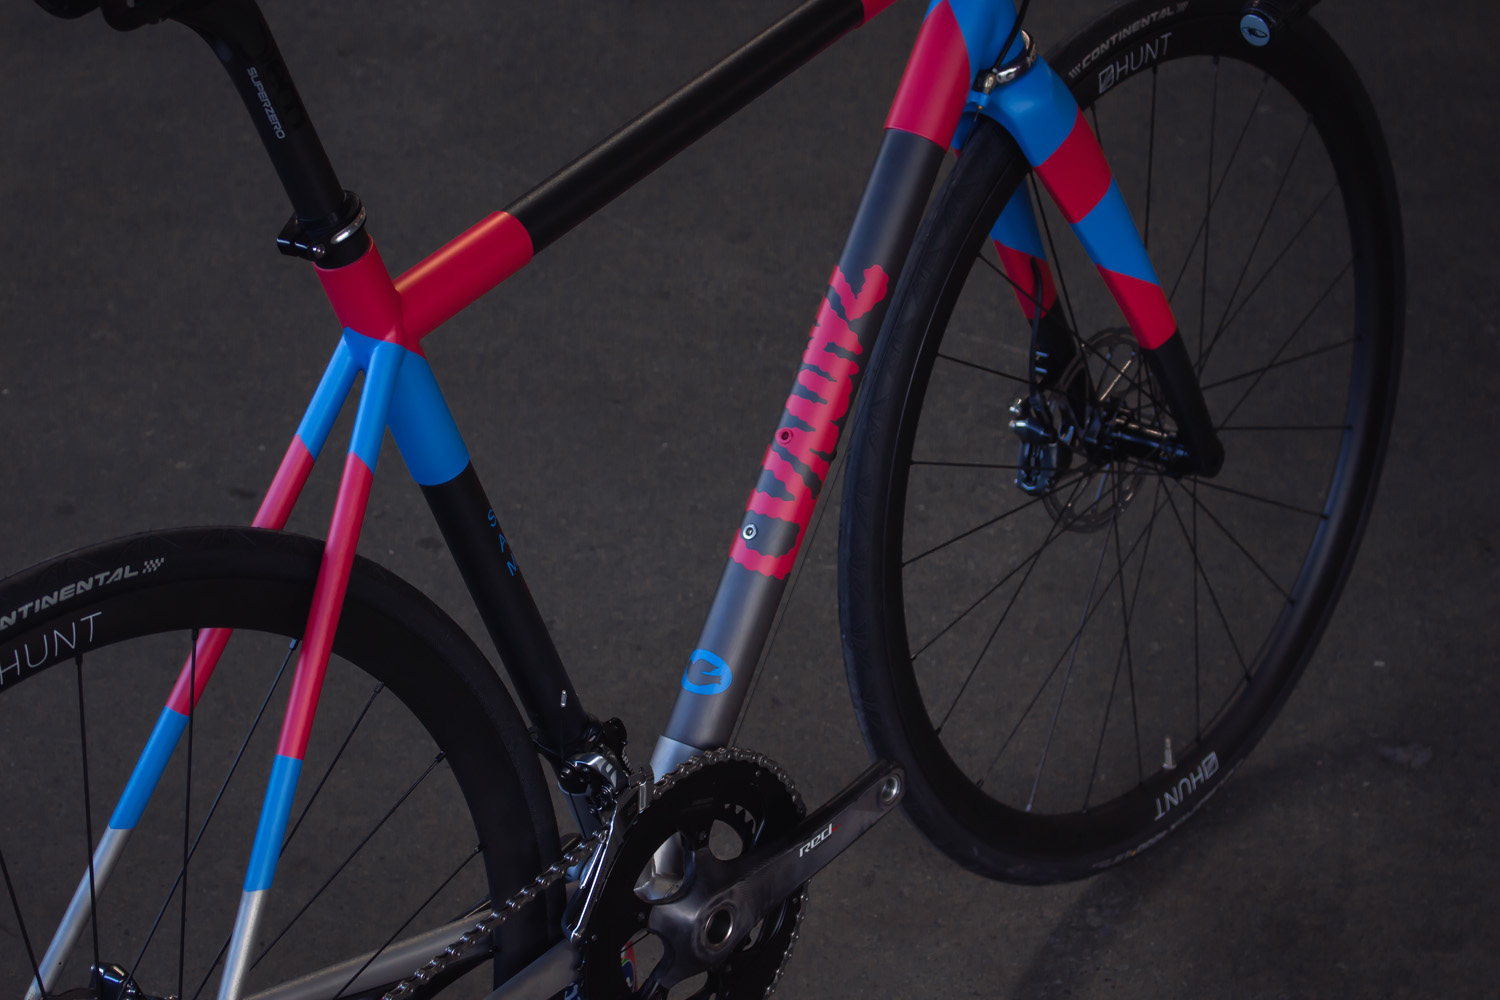 quirk_cycles_stainless_carbon_climber_road_JPEG_0007.jpg